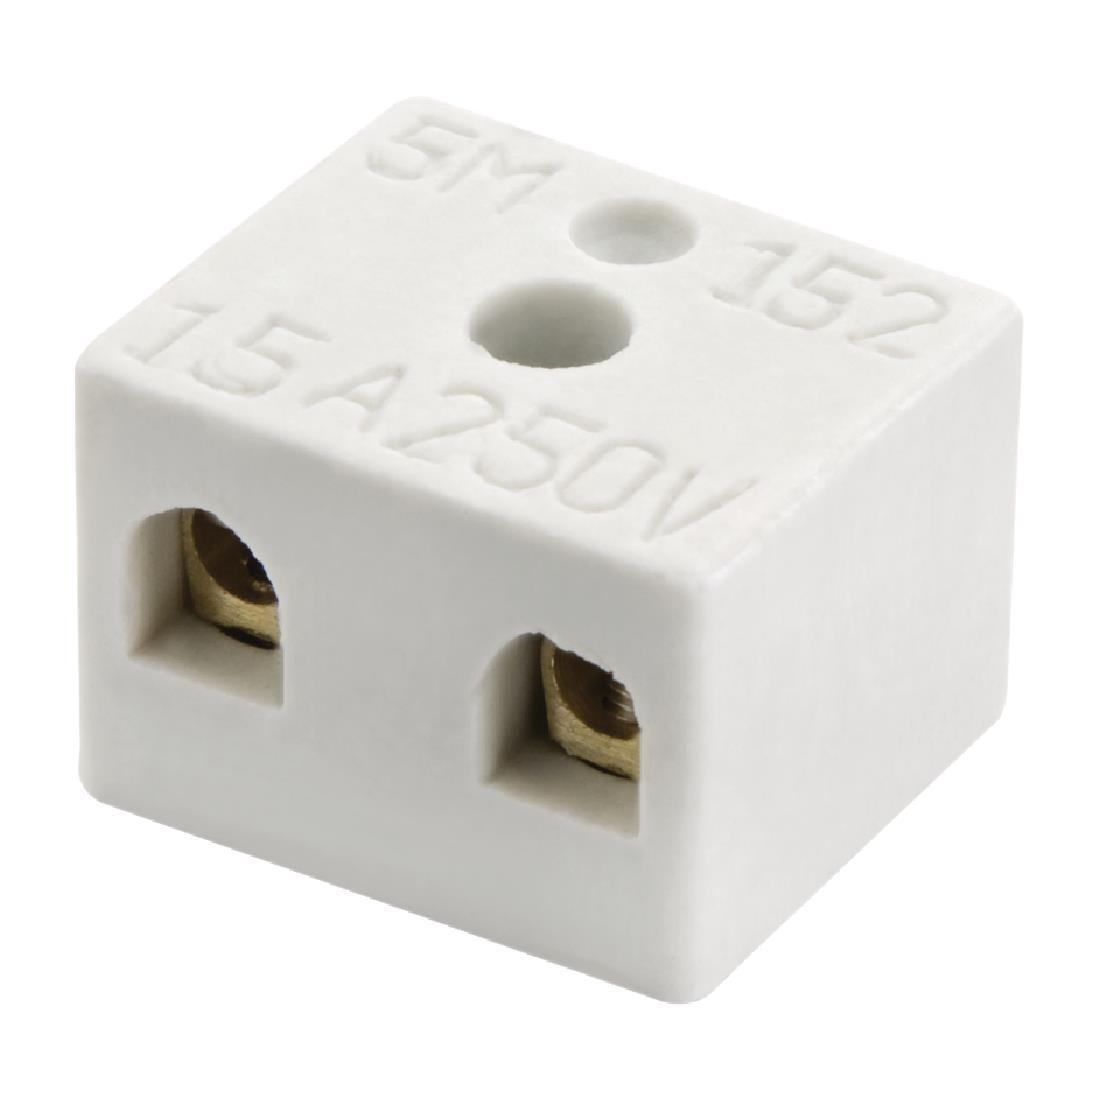 Buffalo Terminal Block For CP868 Buffalo Pizza Oven - AJ083